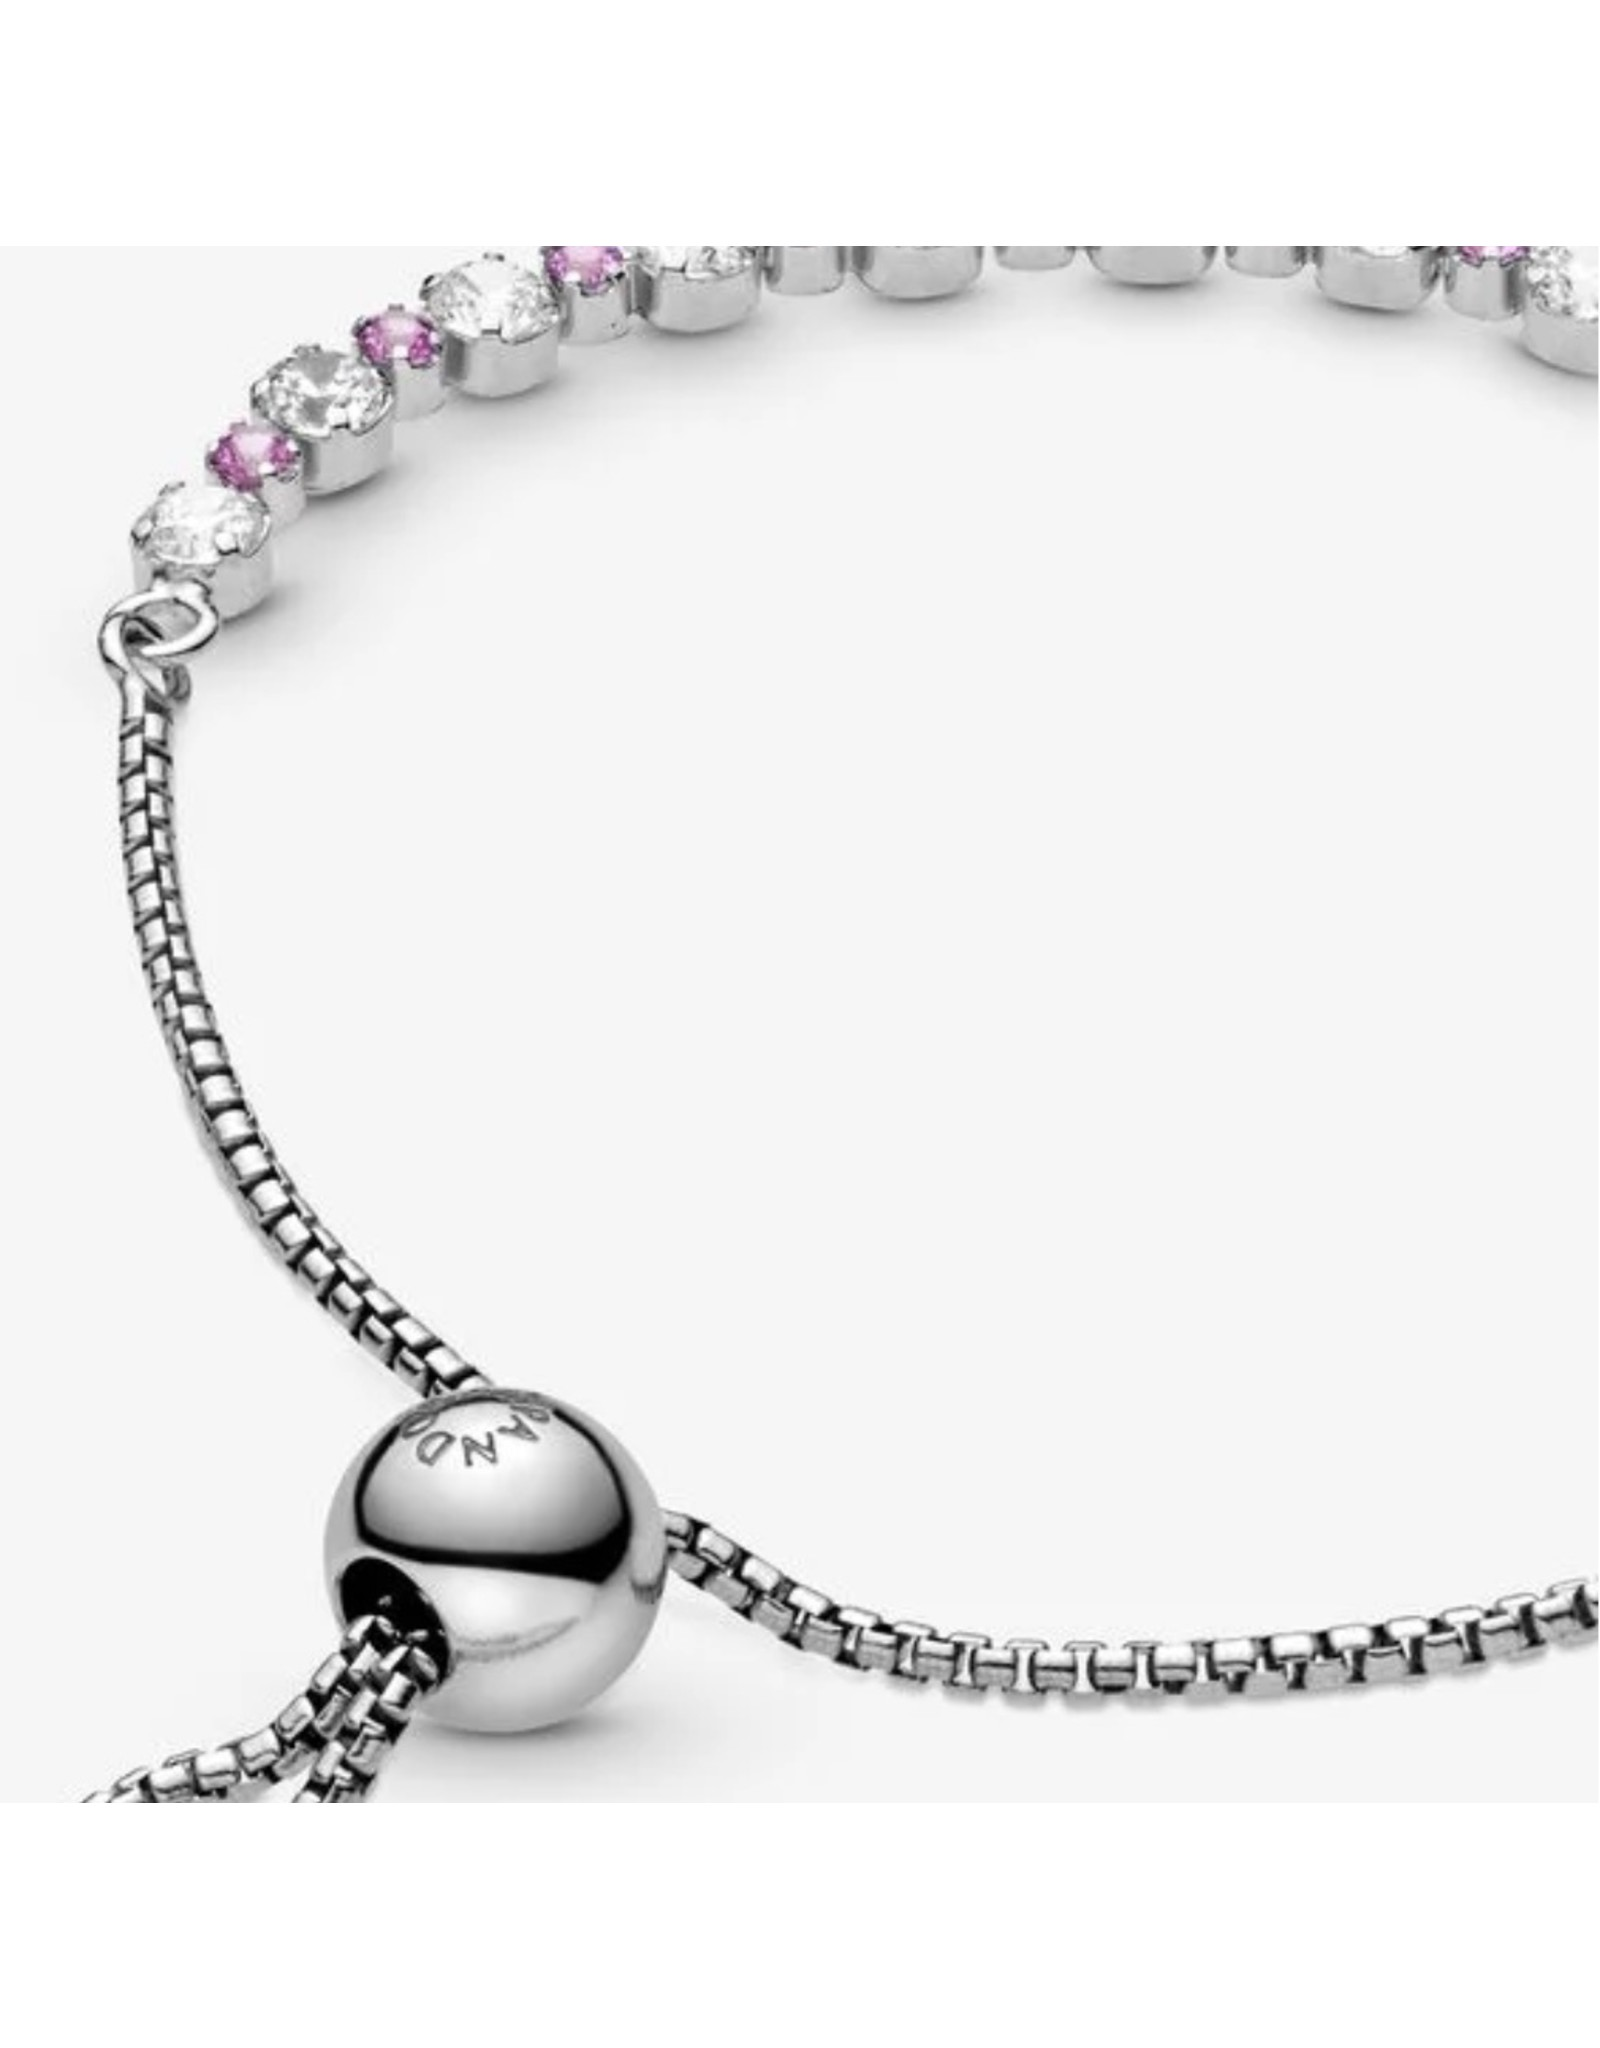 Pandora Pandora Sliding Bracelet,598517C02, Pink and Clear Sparkle